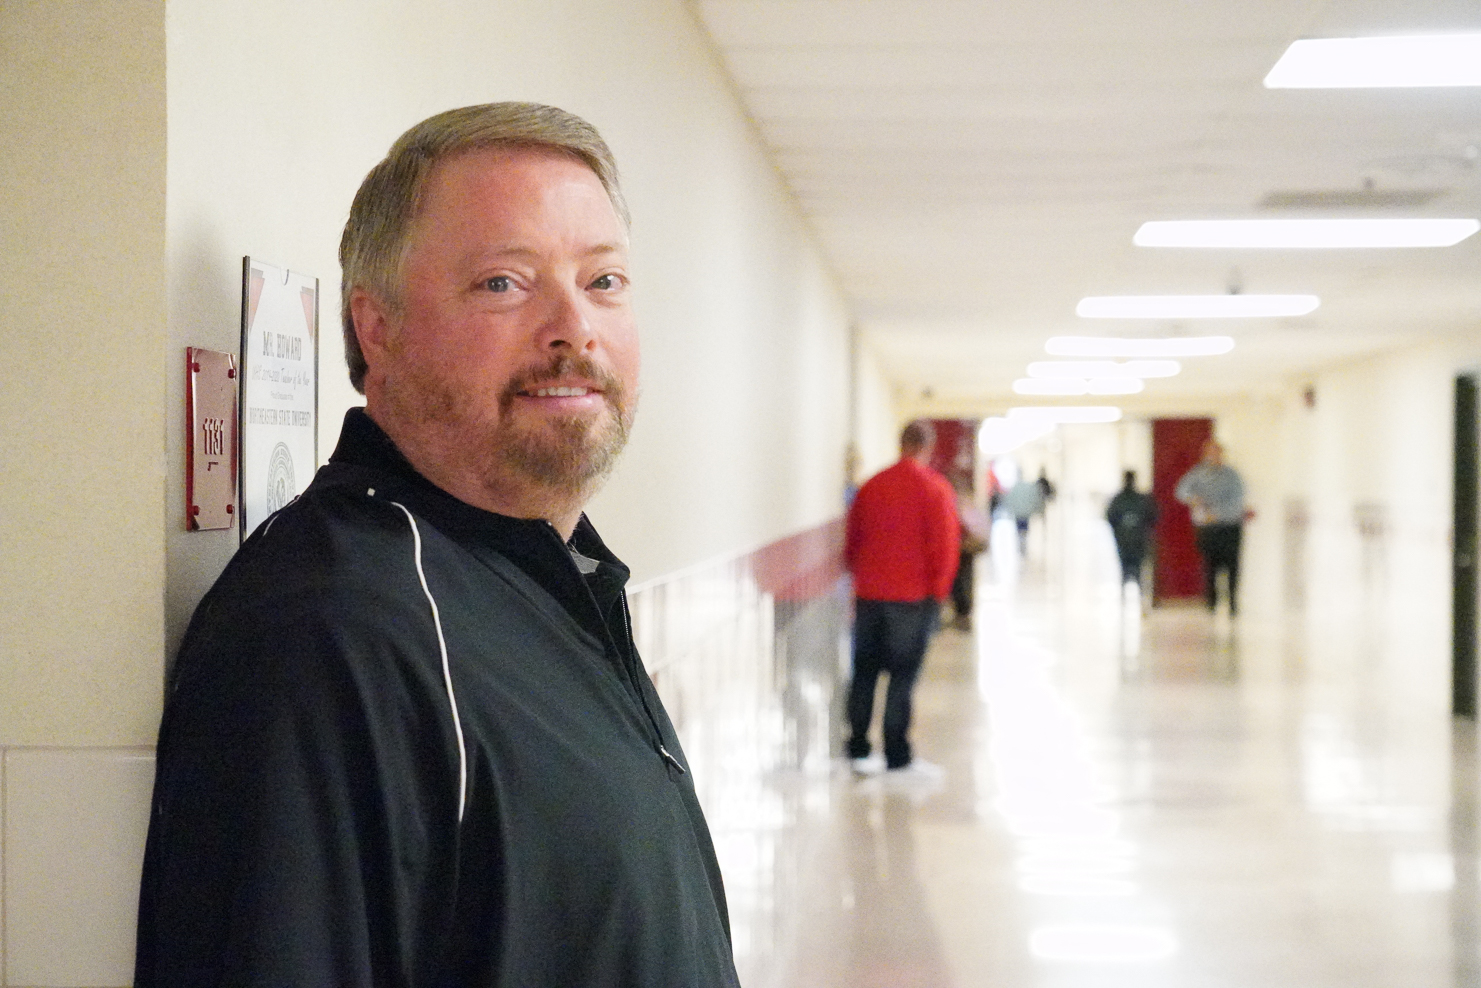 "High School – Glenn Howard, Business Business teacher Glenn Howard has been named the Union High School Teacher of the Year for 2019-2020. Howard has taught a total of 32 years, beginning his Union career during the 1993-1994 school year (27 years!). ""From a young age, I discovered that the closest relationships I had in school were with my teachers,"" Howard said. ""I felt I could go to them for good advice if I had a problem. They were some of the most passionate and caring people that I have known and I saw how lives could be transformed by a caring teacher.  If I became a teacher, I felt there would be more opportunities for me to form relationships with young people and wanted to be the person that young people could turn to when they needed advise.  My entire educational career has been touched by my colleagues. I feel that I am living a legacy, walking the path that these educators have laid down before me.  Therefore, I wanted to be an educator, an example, a mentor and confidant, to make a difference in the lives of as many students and teachers as possible.  I estimate that I have directly impacted over 6000 students and through mentoring teachers, indirectly impacted thousands more students during my 32 year career. I feel I am making a difference and honored to be considered one of the best by my colleagues, an effective teacher.  What a legacy to continue!"" Howard said he enjoys teaching technology. ""I enjoy teaching technology courses because I am fascinated by our rapidly changing digital age.  I feel there is no better reward than witnessing student engagement with technology and excitement as they grasp a concept for the first time.  After reading, writing and arithmetic, it is vital for students to have a strong digital foundation in the current job market.  Therefore, I am highly motivated to share the emerging technologies of today's digital age that are vital to student's success during college and career. ""  Educational Background: •	Associates degree from Claremore Junior College (Rogers State College) •	Bachelors from Northeastern State University •	Certified in Chemistry, Physical Science and Physical Education •	Completed AP Computer Science Summer Institute at Texas Lutheran University"